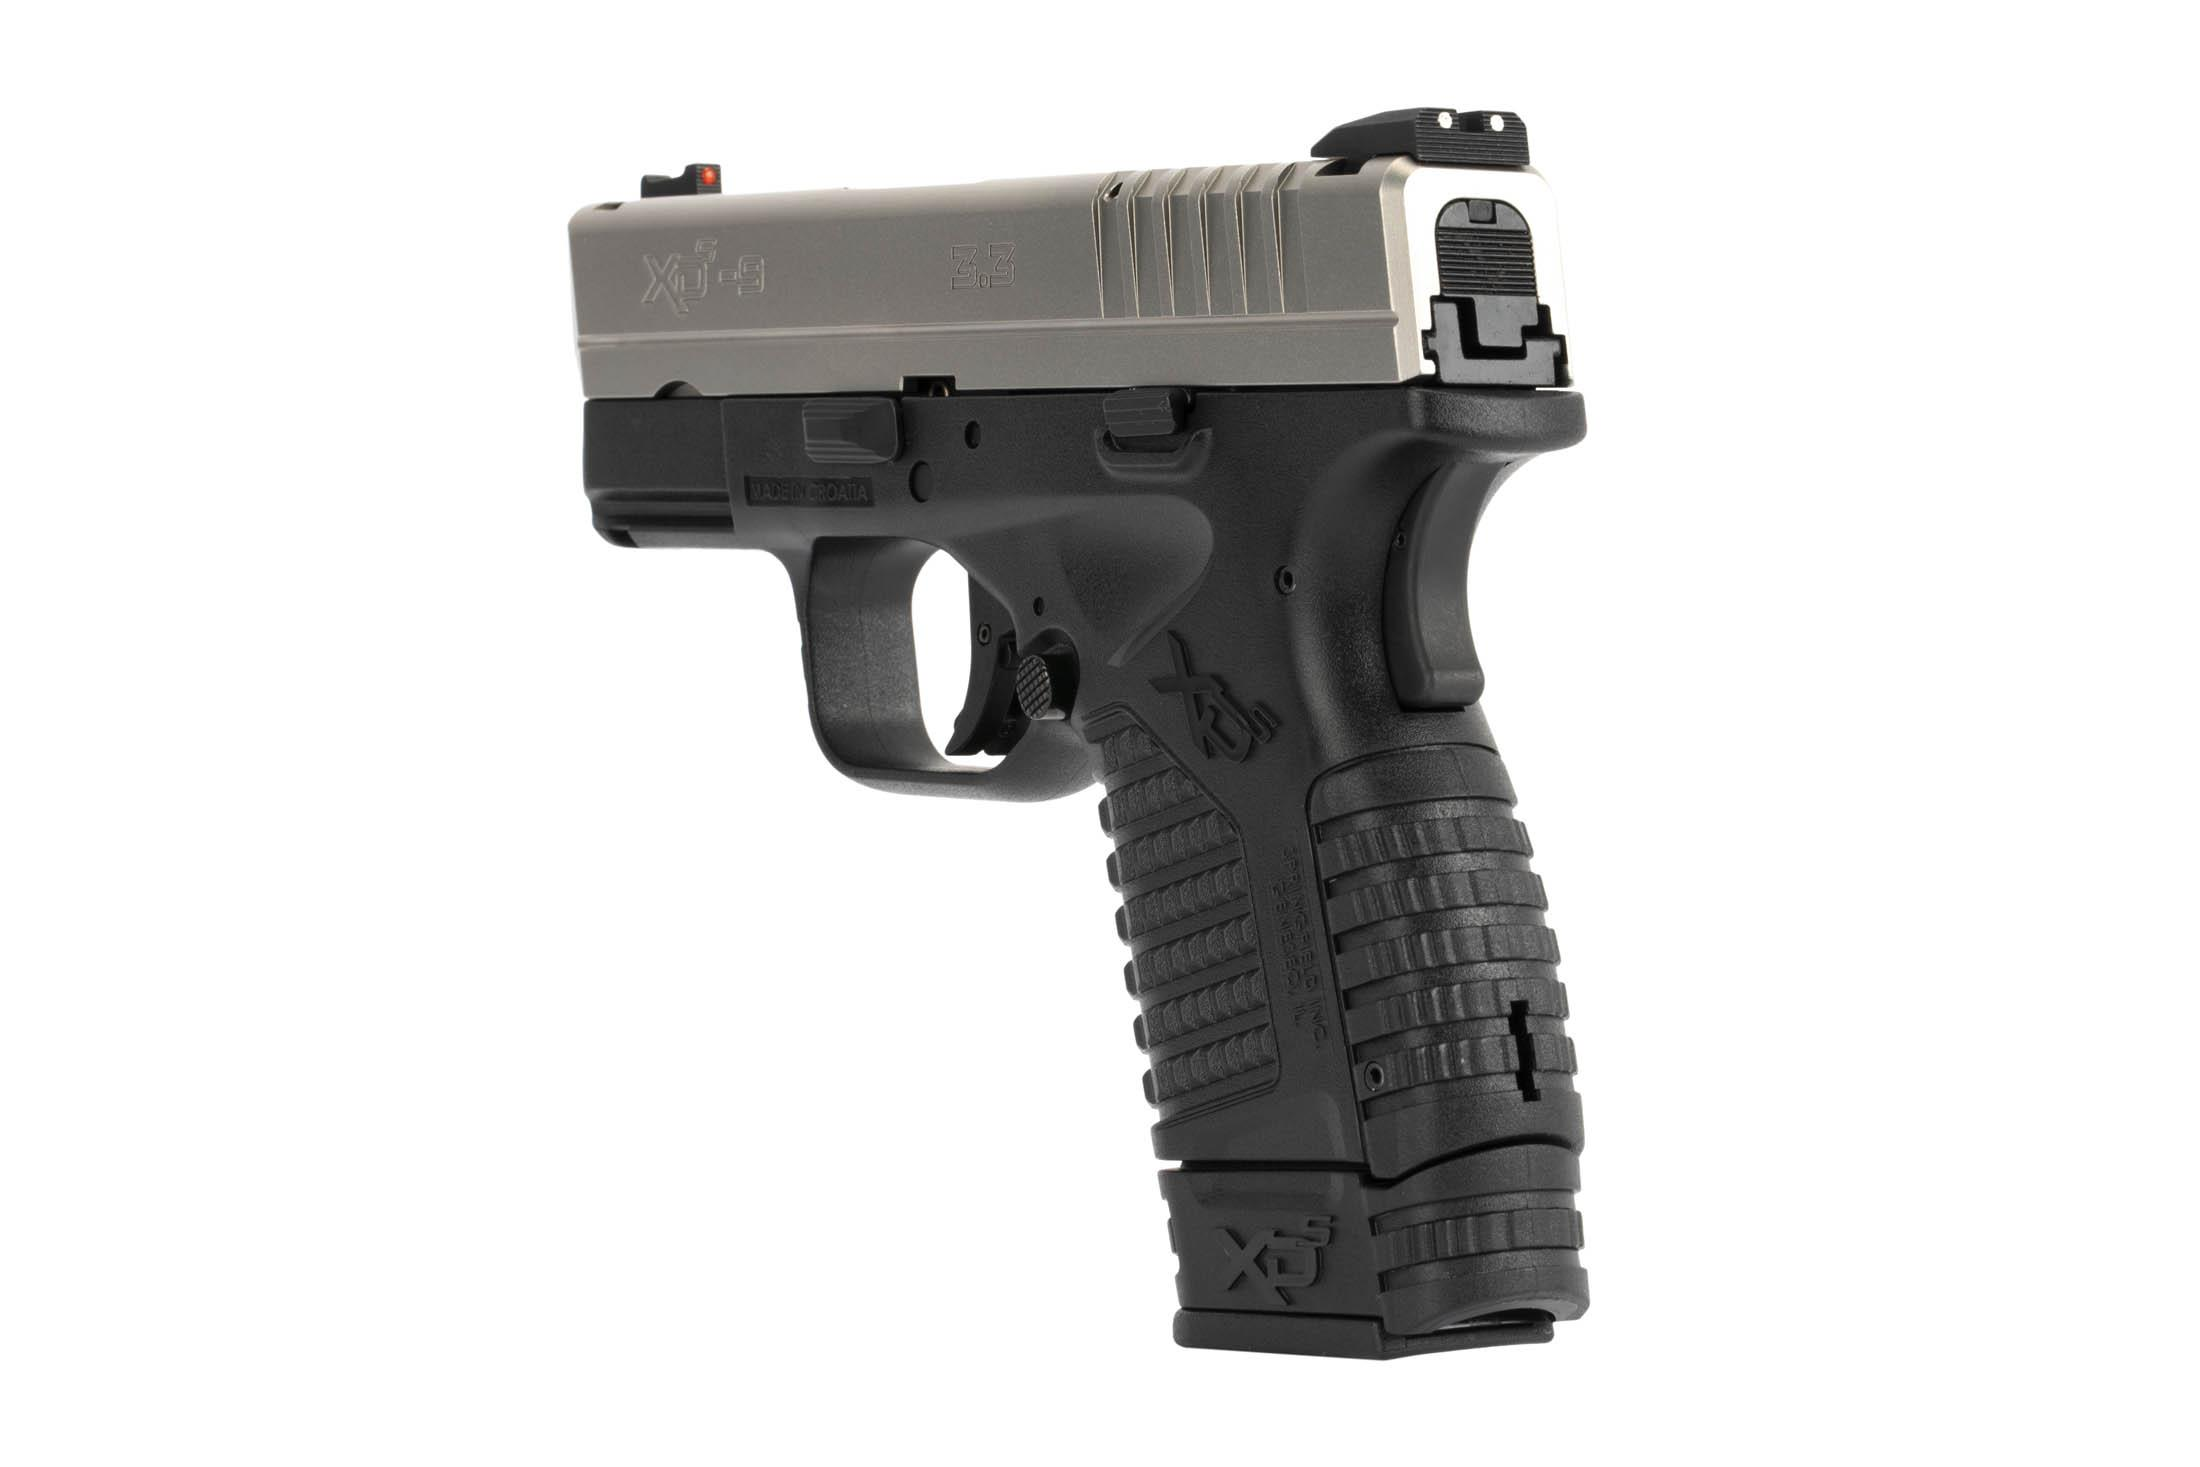 The Springfield Armory XD-S is a 9mm Sub Compact 8 round Handgun with enhanced grip texture and safety